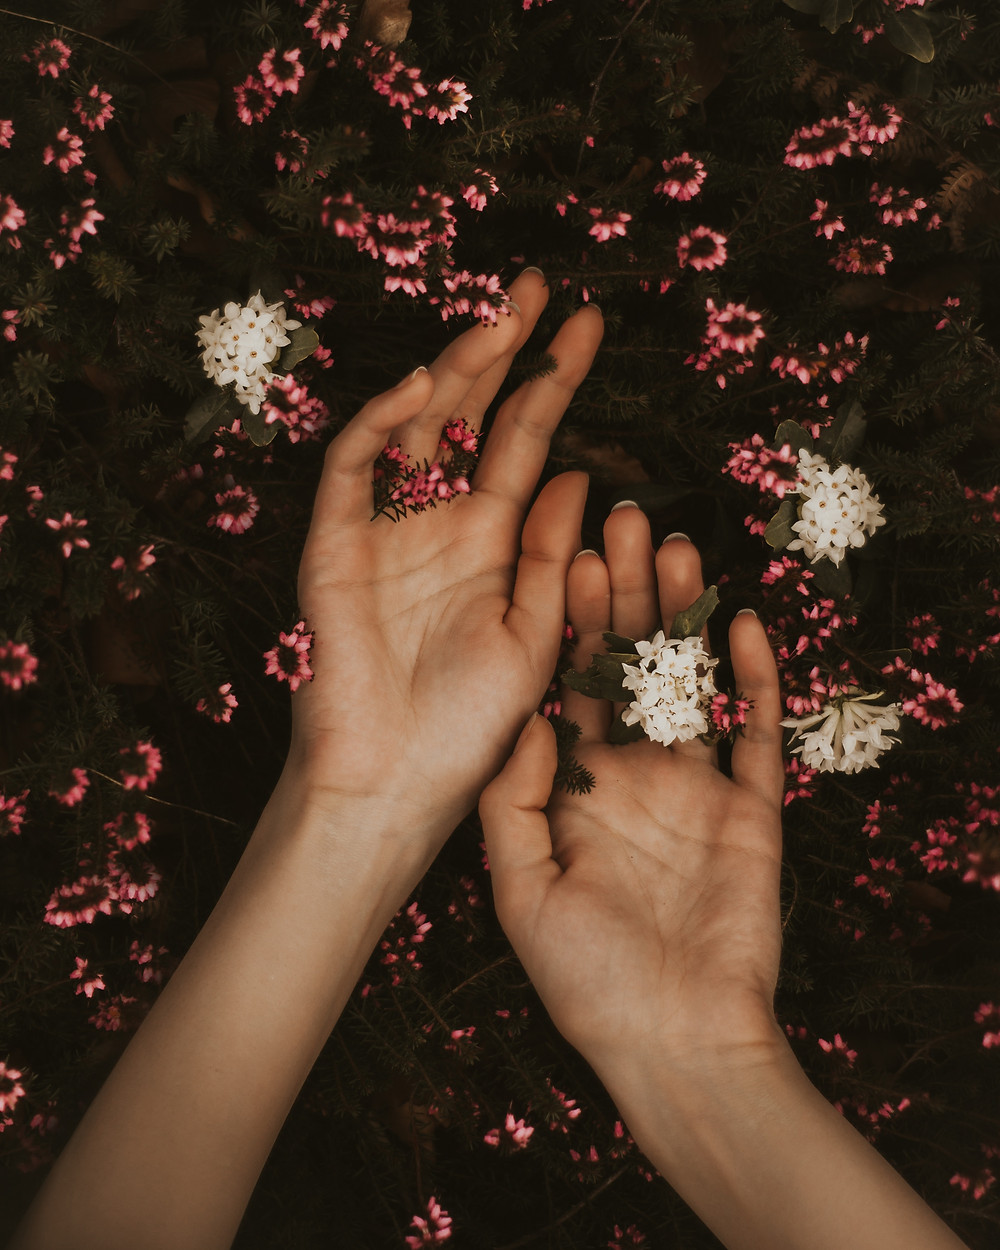 Hands surrounded by oink and white flowers